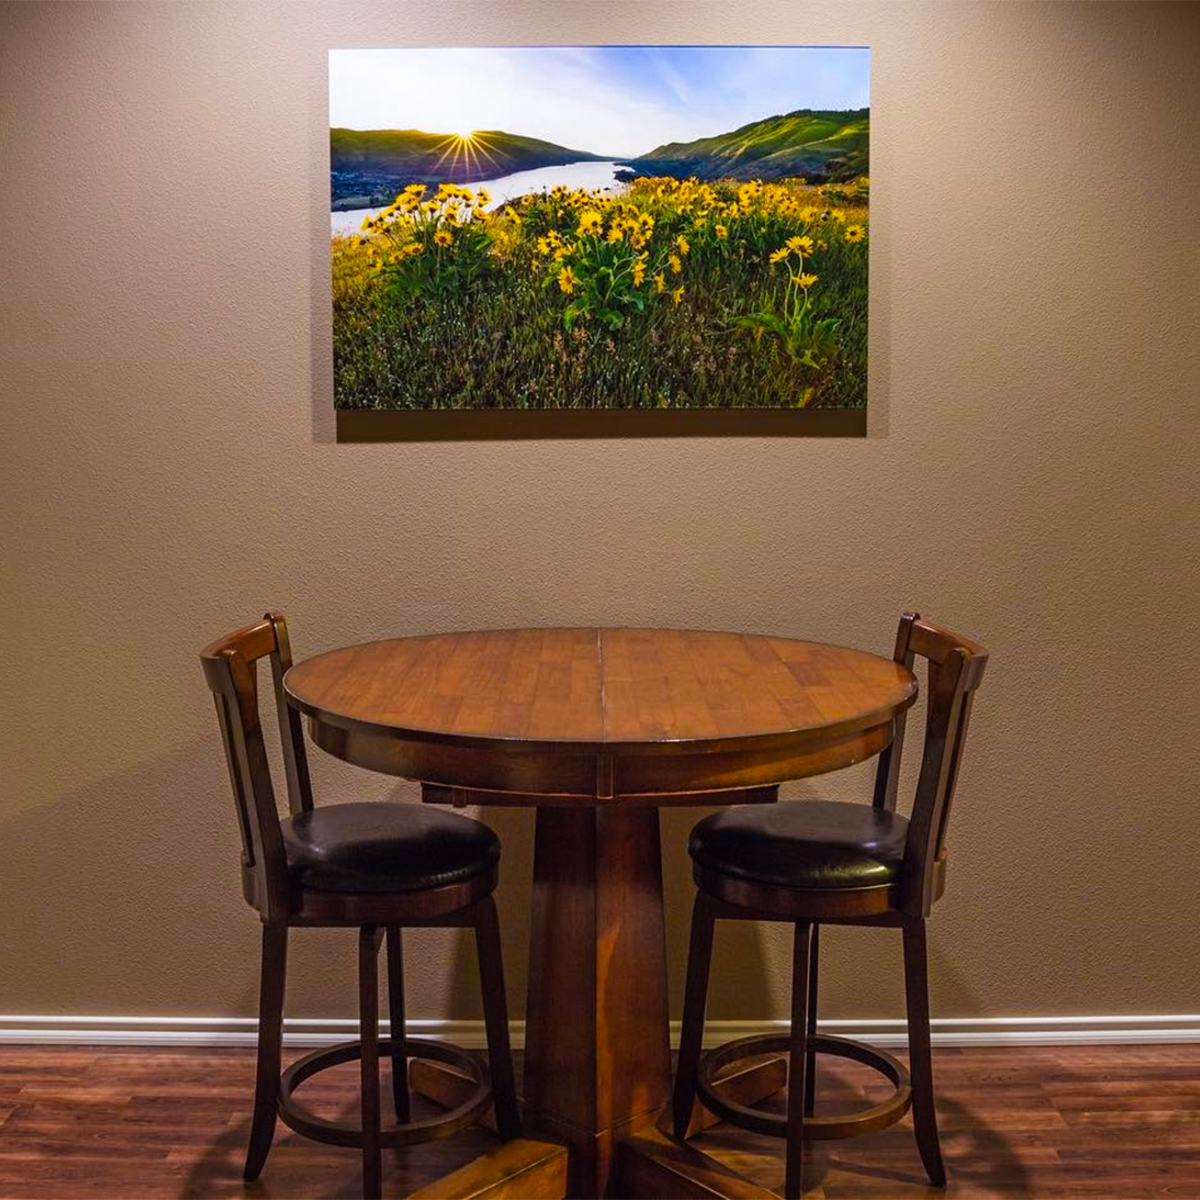 Acrylic Face Mount Print in Dining Room - Face Mounting Photos to Acyrlic